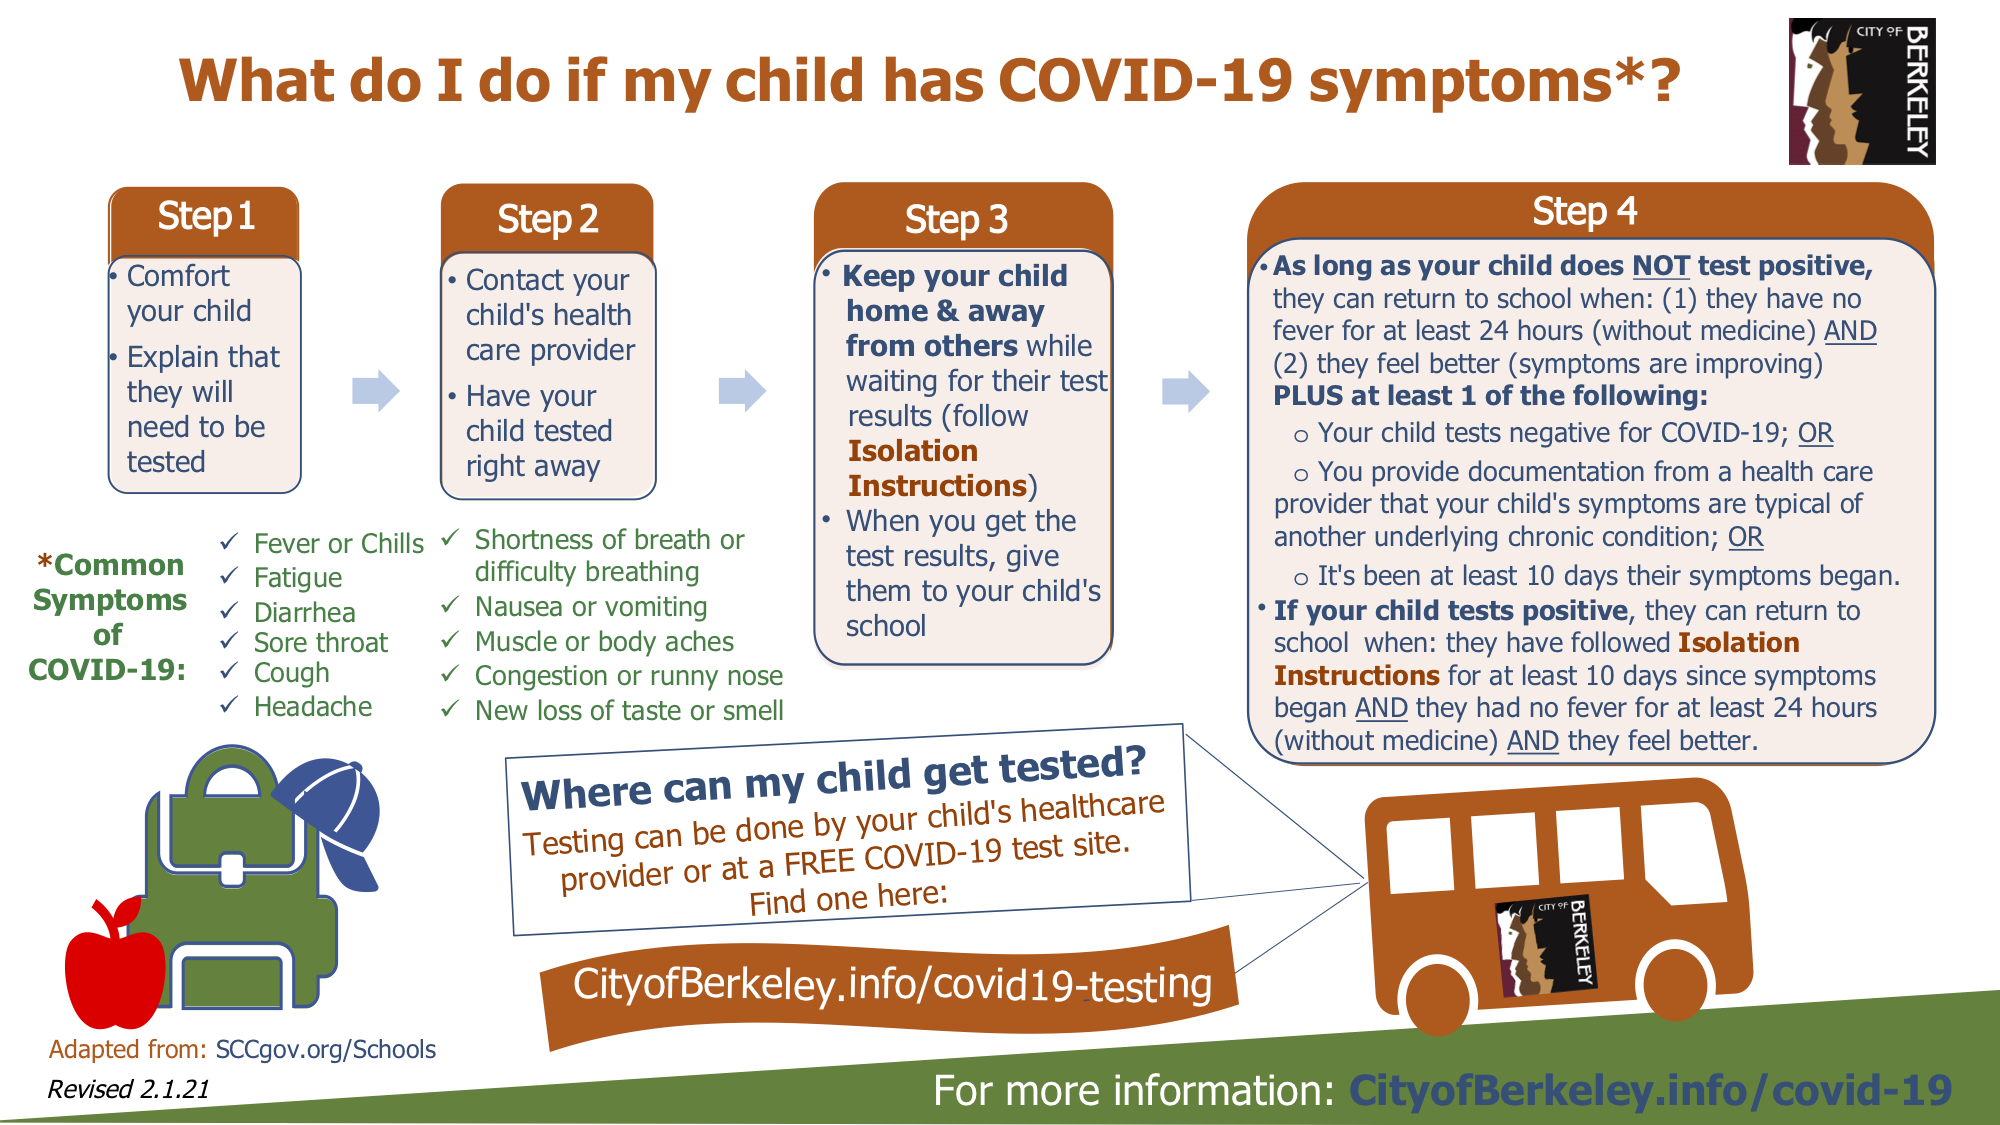 Information about what to do if your child has COVID symptoms